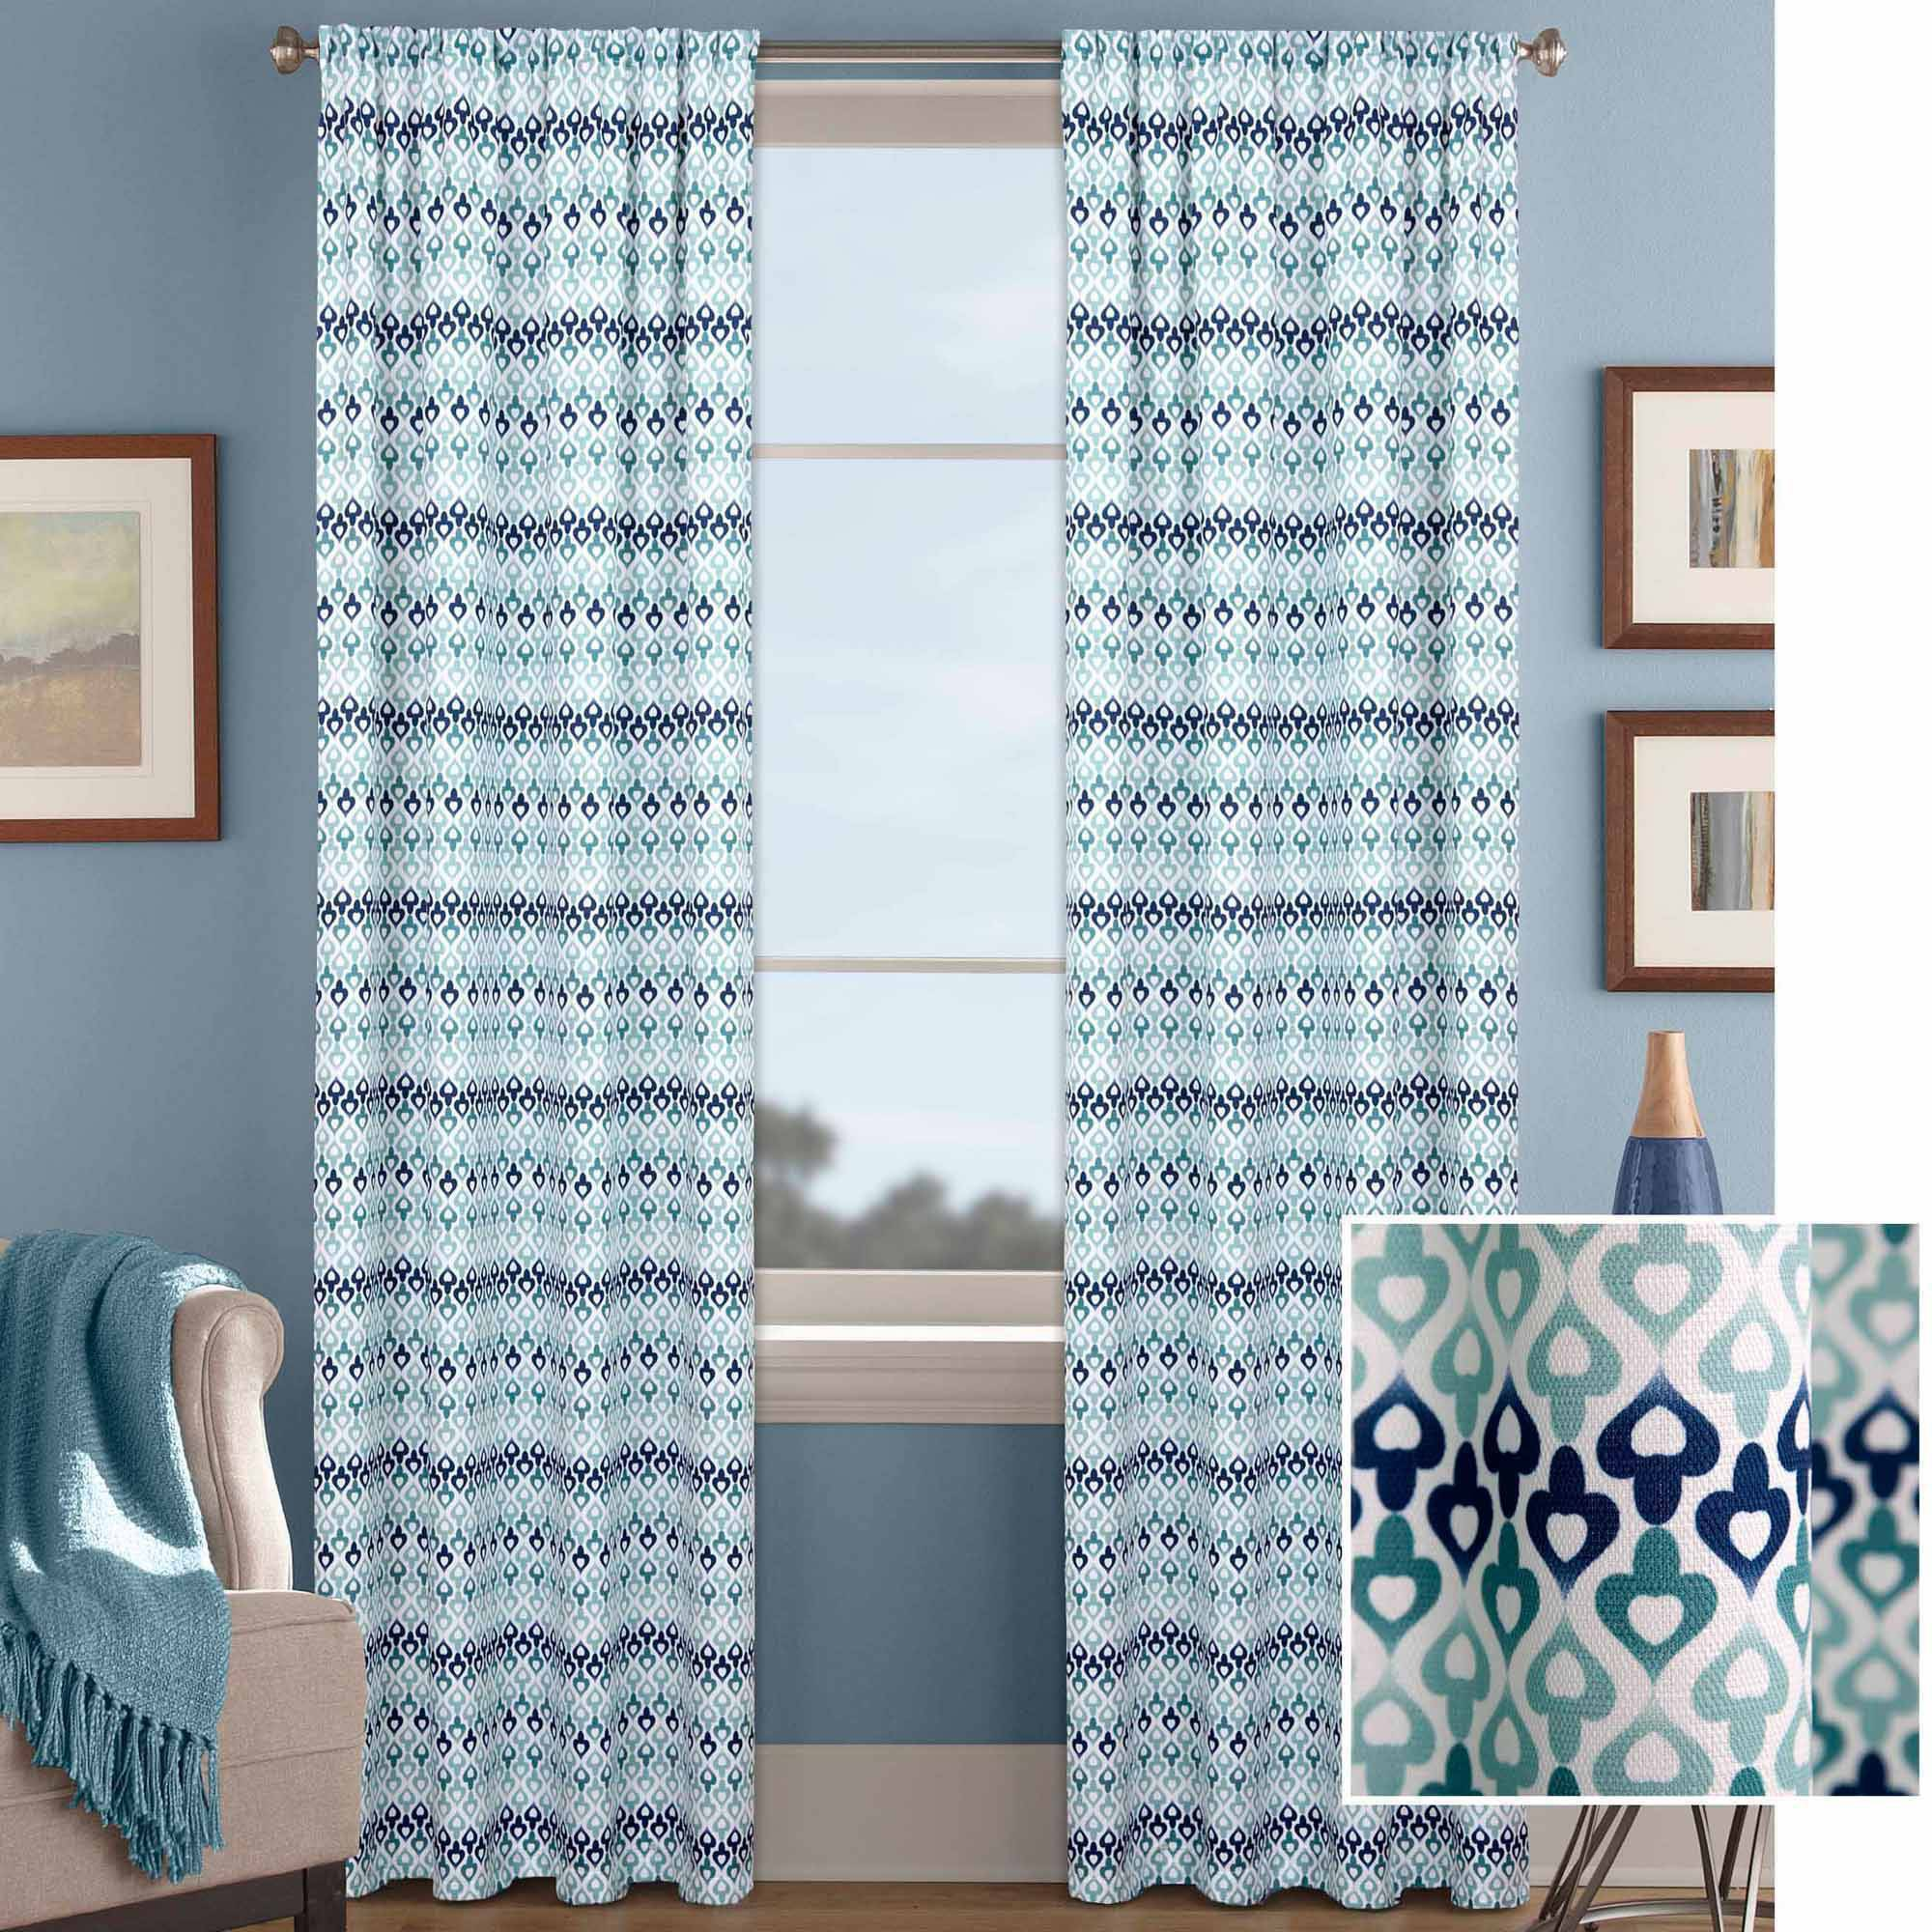 Better Homes And Gardens Morocco Curtain Panel   Walmart.com